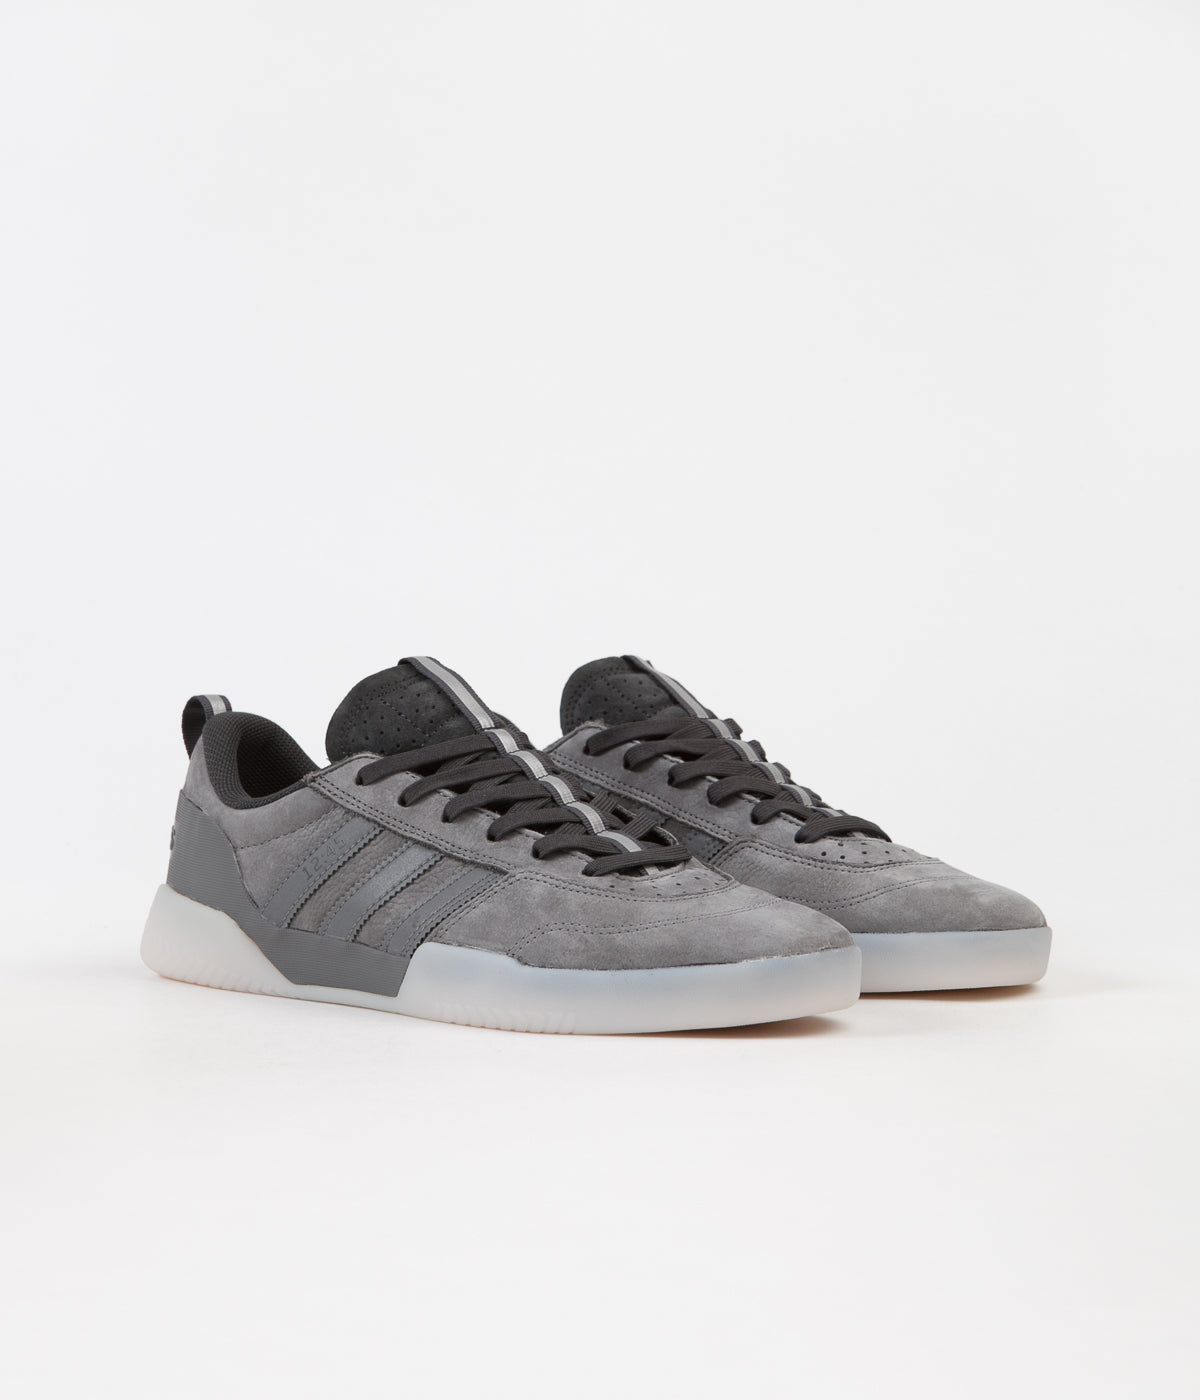 ... Adidas x Numbers City Cup Shoes - Grey Four   Carbon   Grey One ... f6460b27a